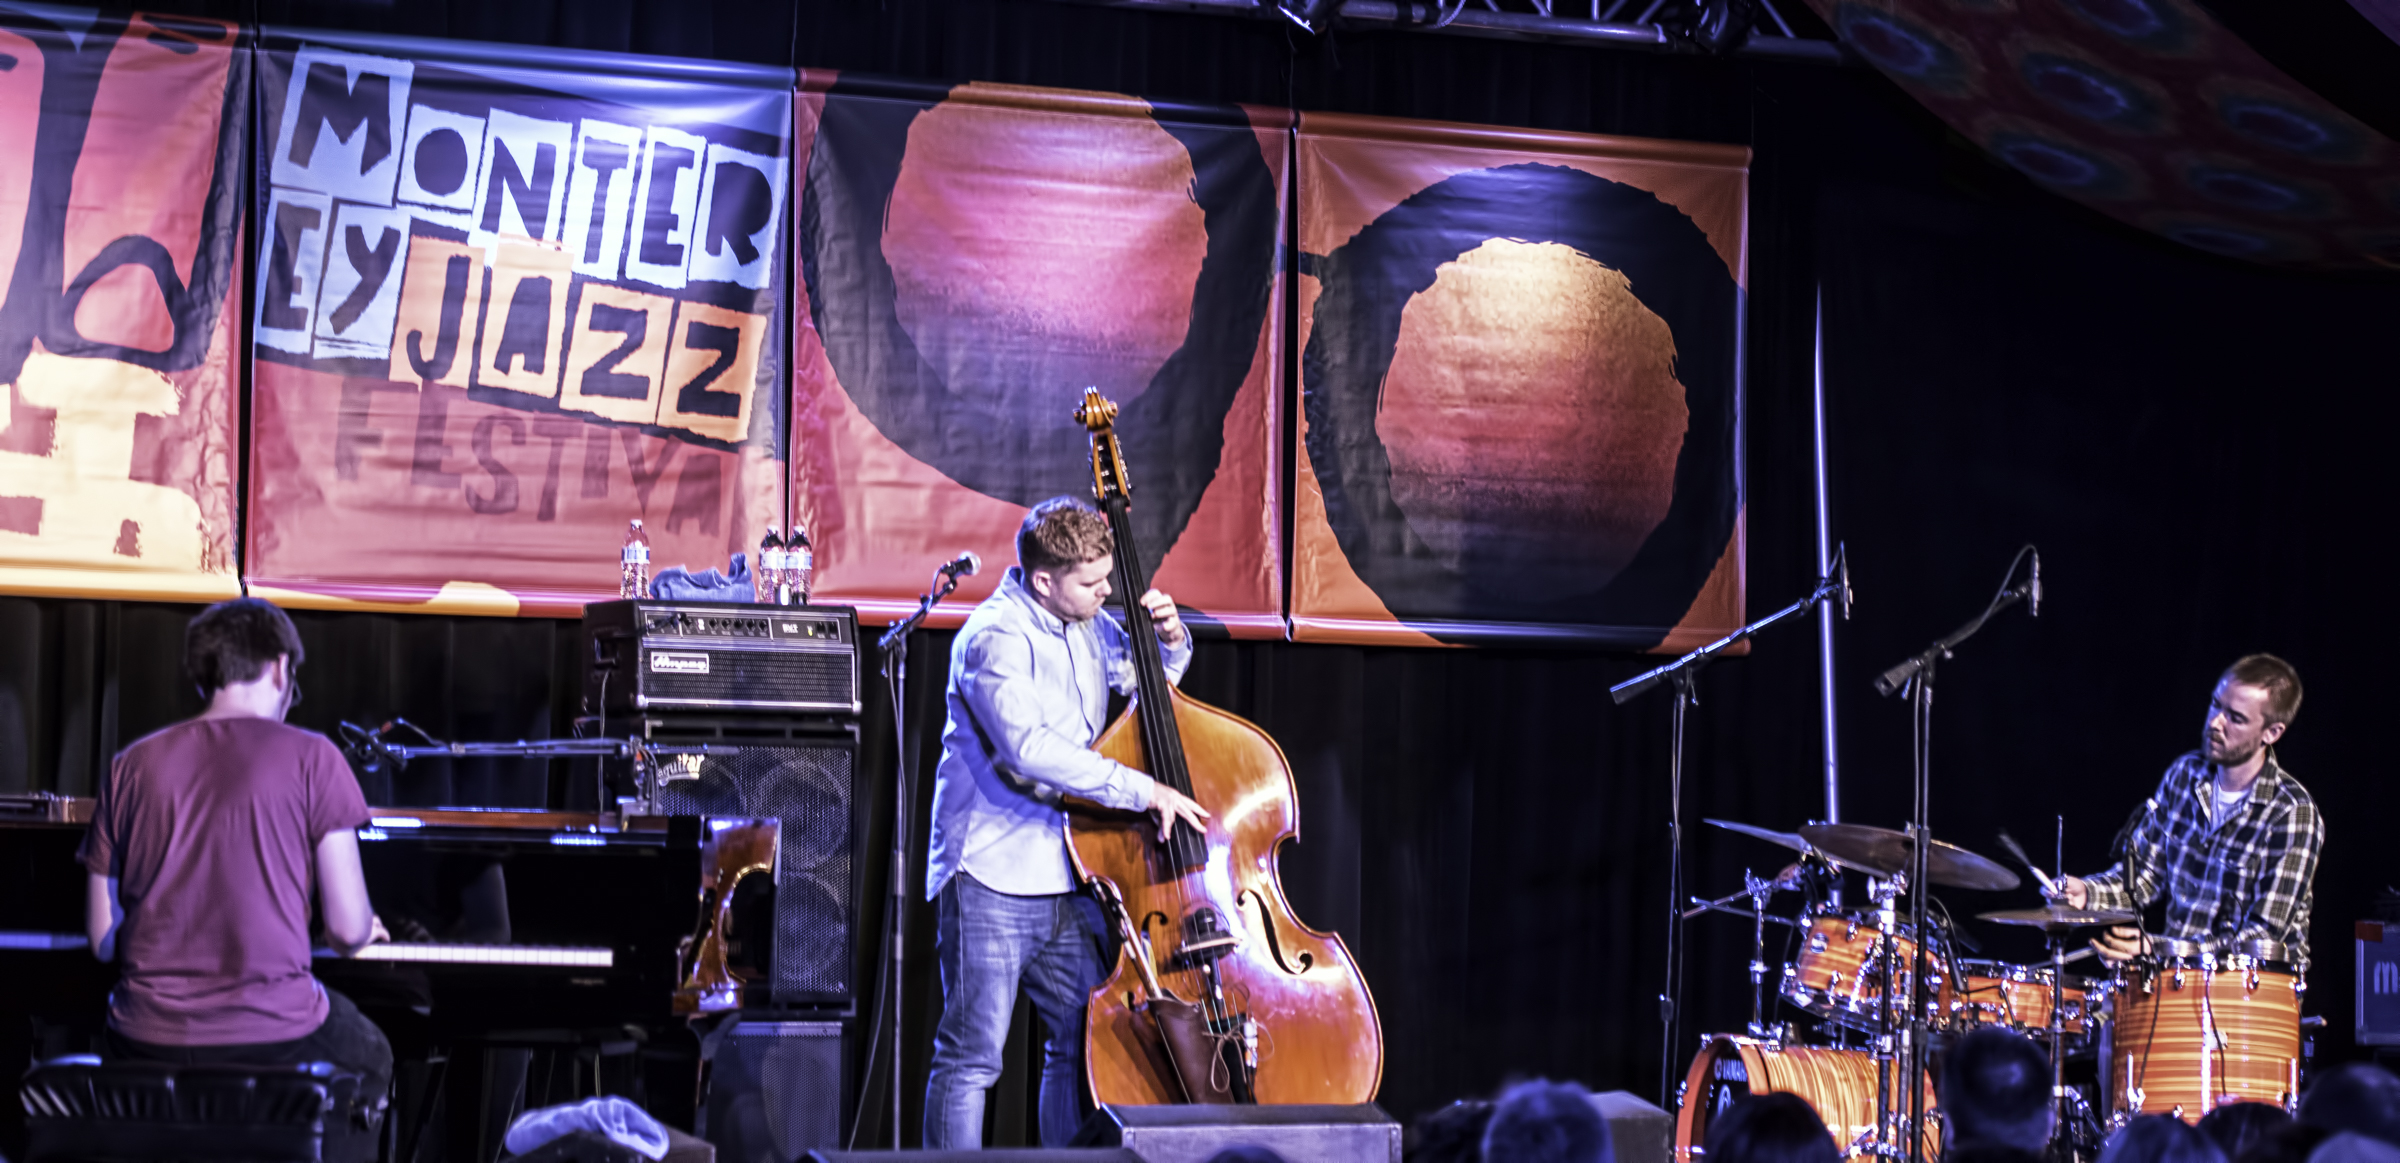 Chris Illingworth, Nick Black and Rob Turner with GoGo Penguin at the Monterey Jazz Festival